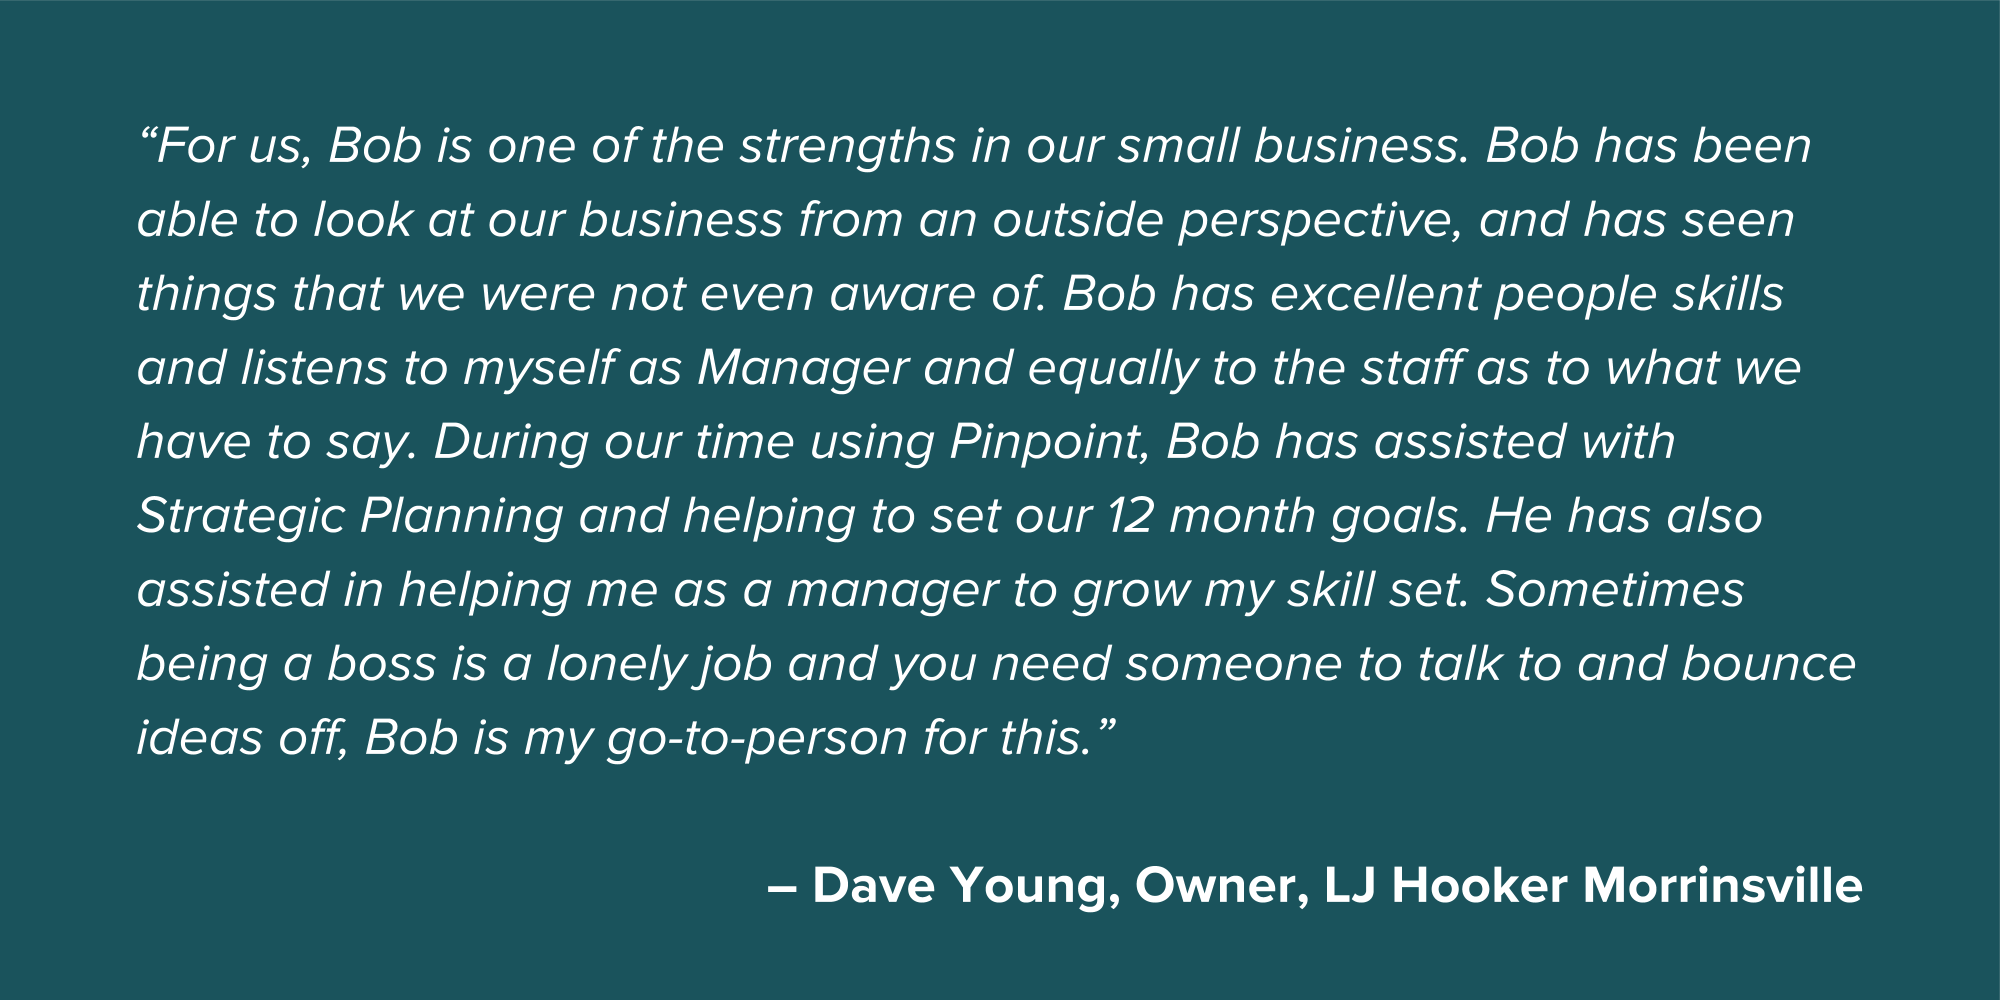 Dave Young Small Business Testimonial Quote